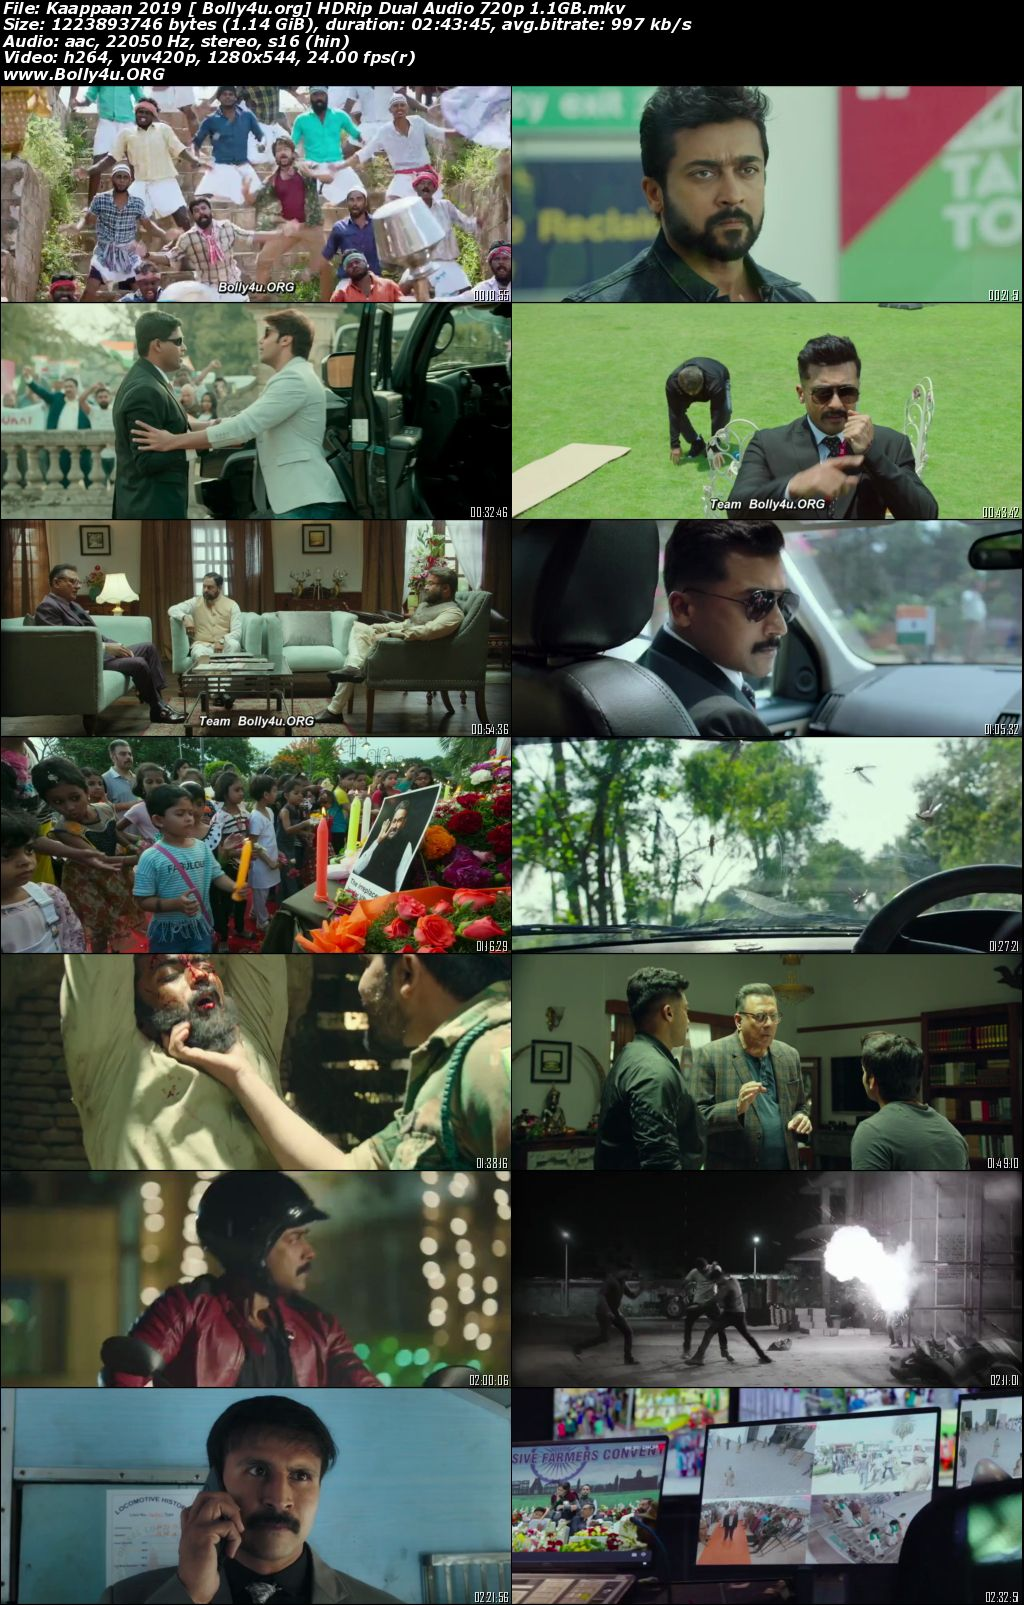 Kaappaan 2019 HDRip 1.1GB UNCUT Hindi Dual Audio 720p Download